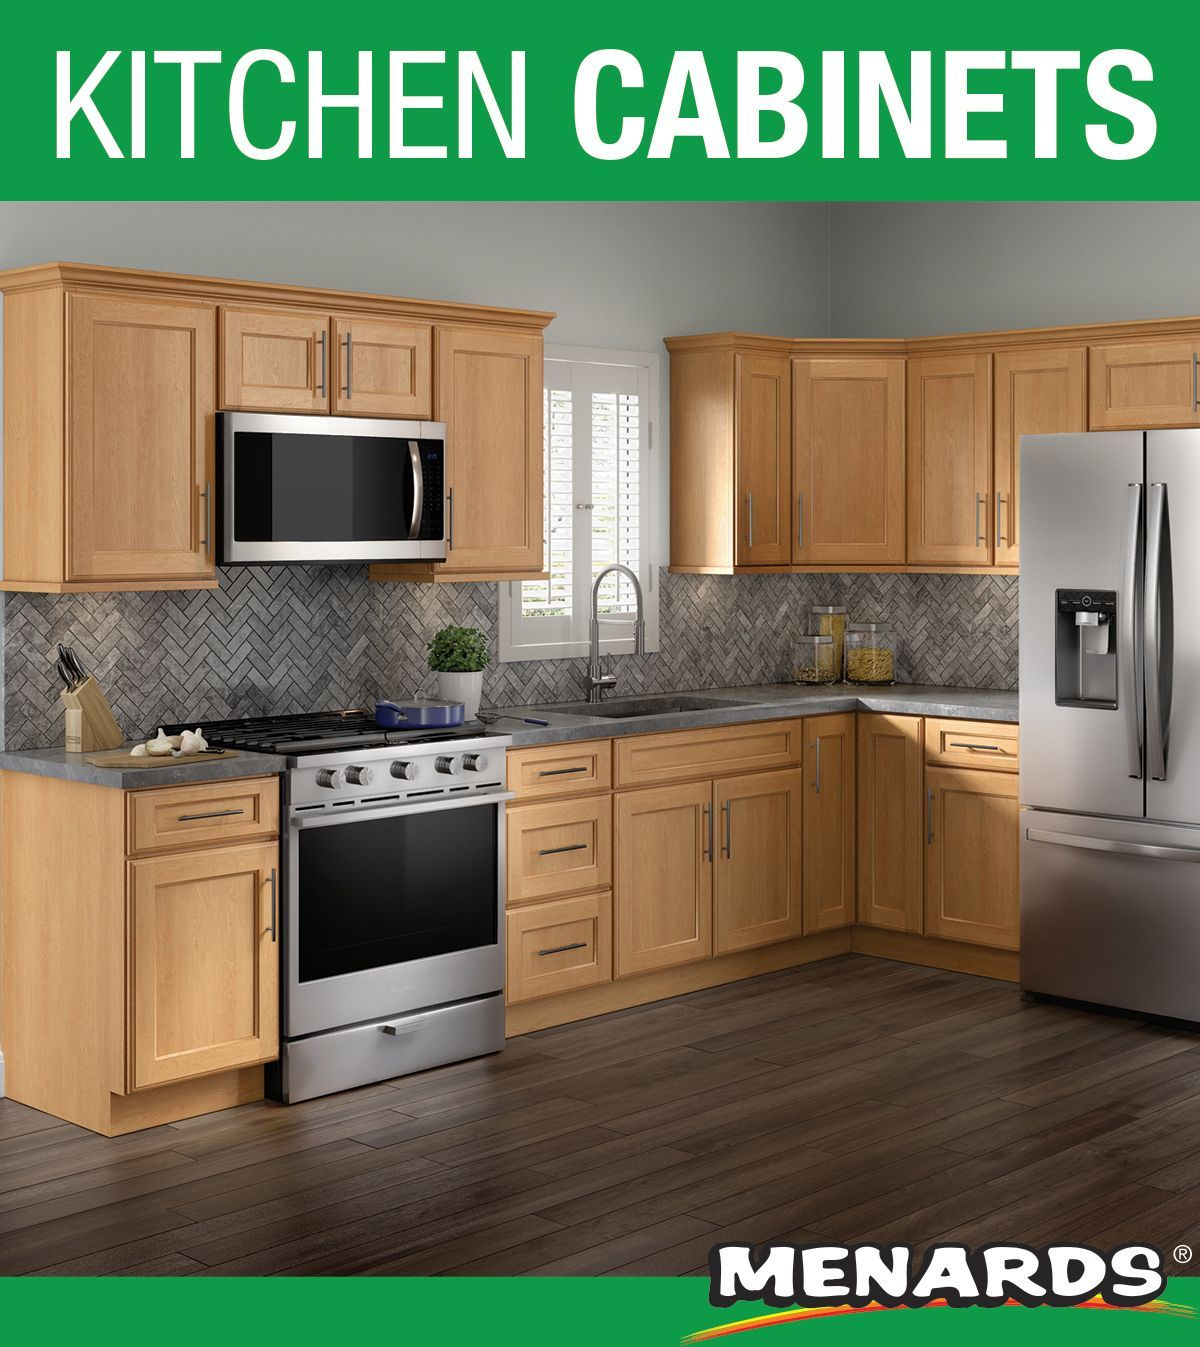 Kitchen Cabinets At Menards In 2020 Menards Kitchen Cabinets Menards Cabinets Kitchen Cabinets